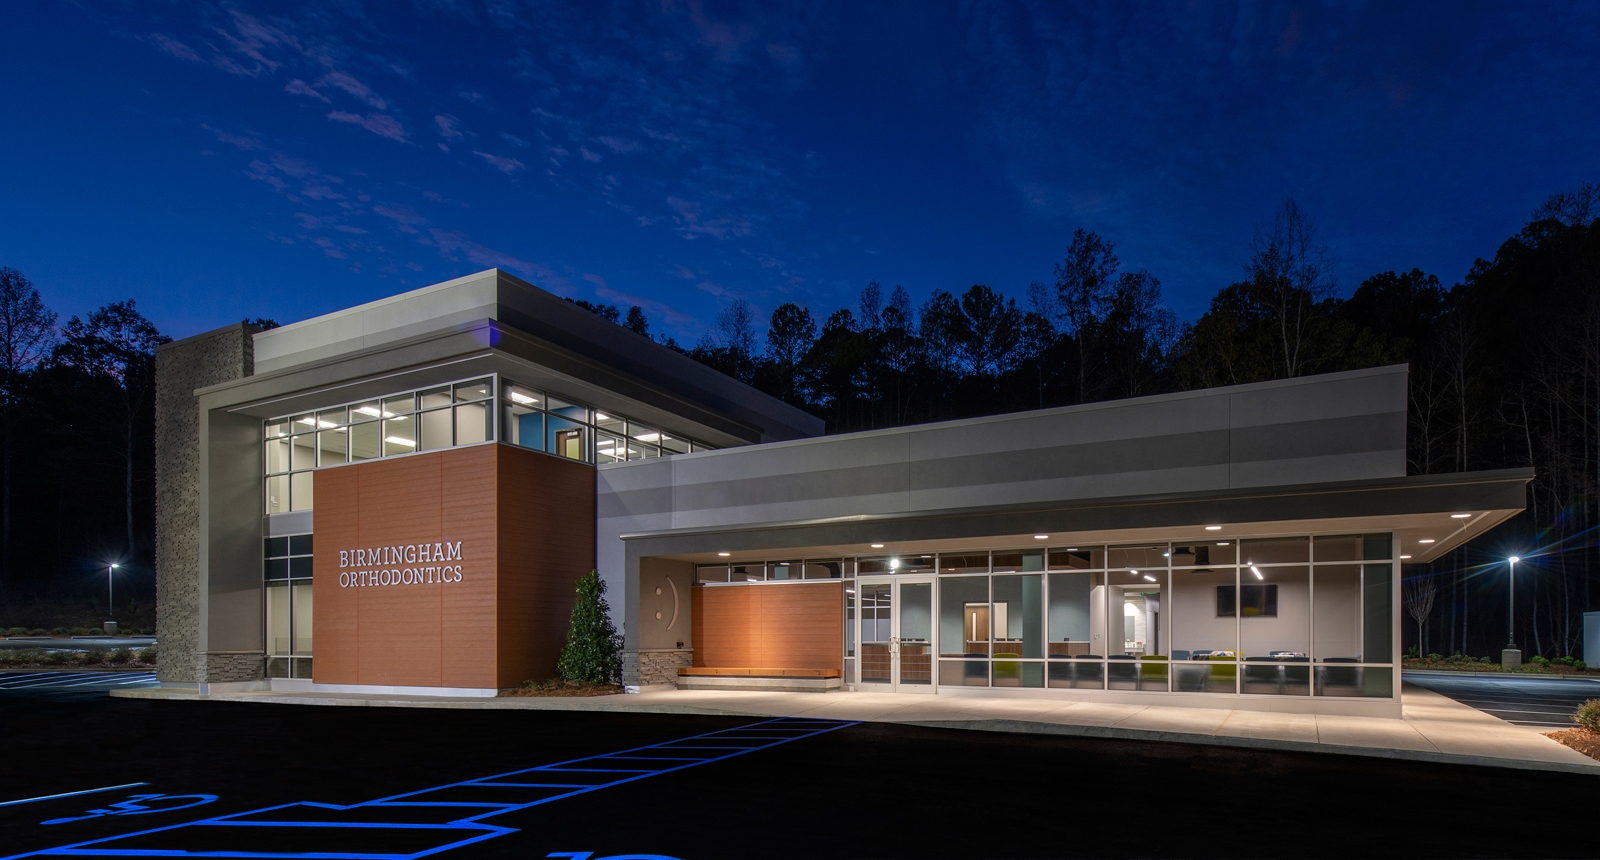 Birmingham Orthodontics Clinic and Headquarters